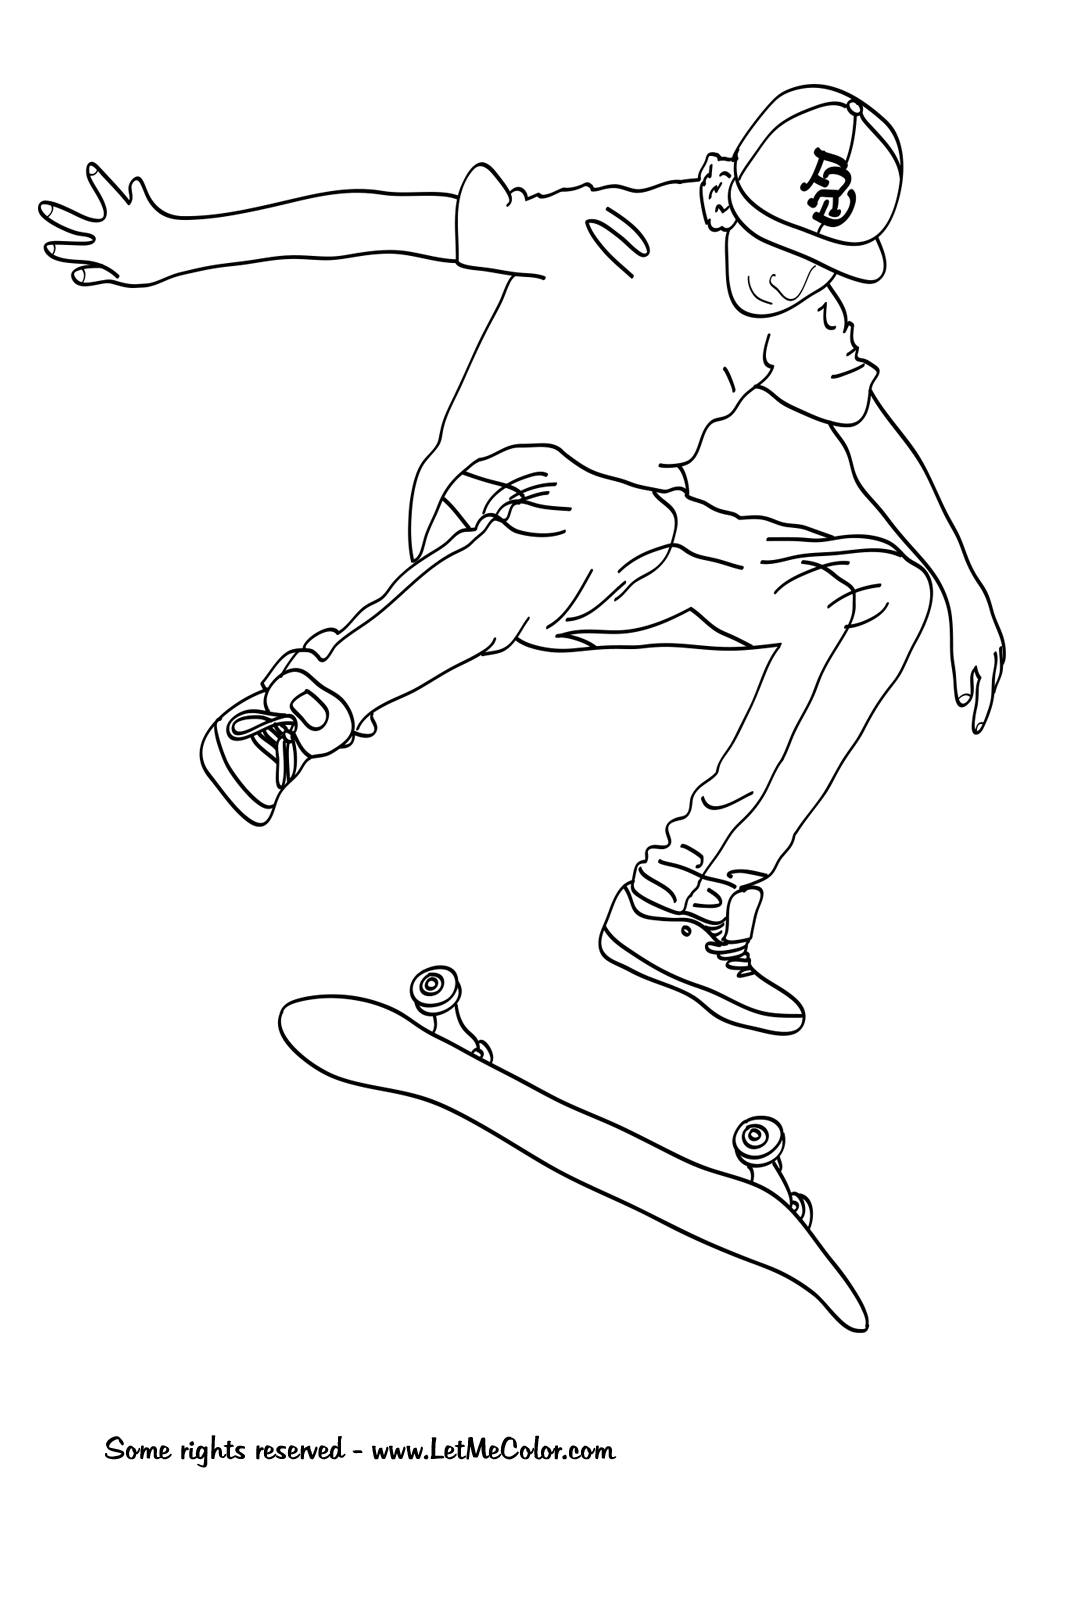 Download Skateboarding Coloring Pages Free Printables | Ziho ...